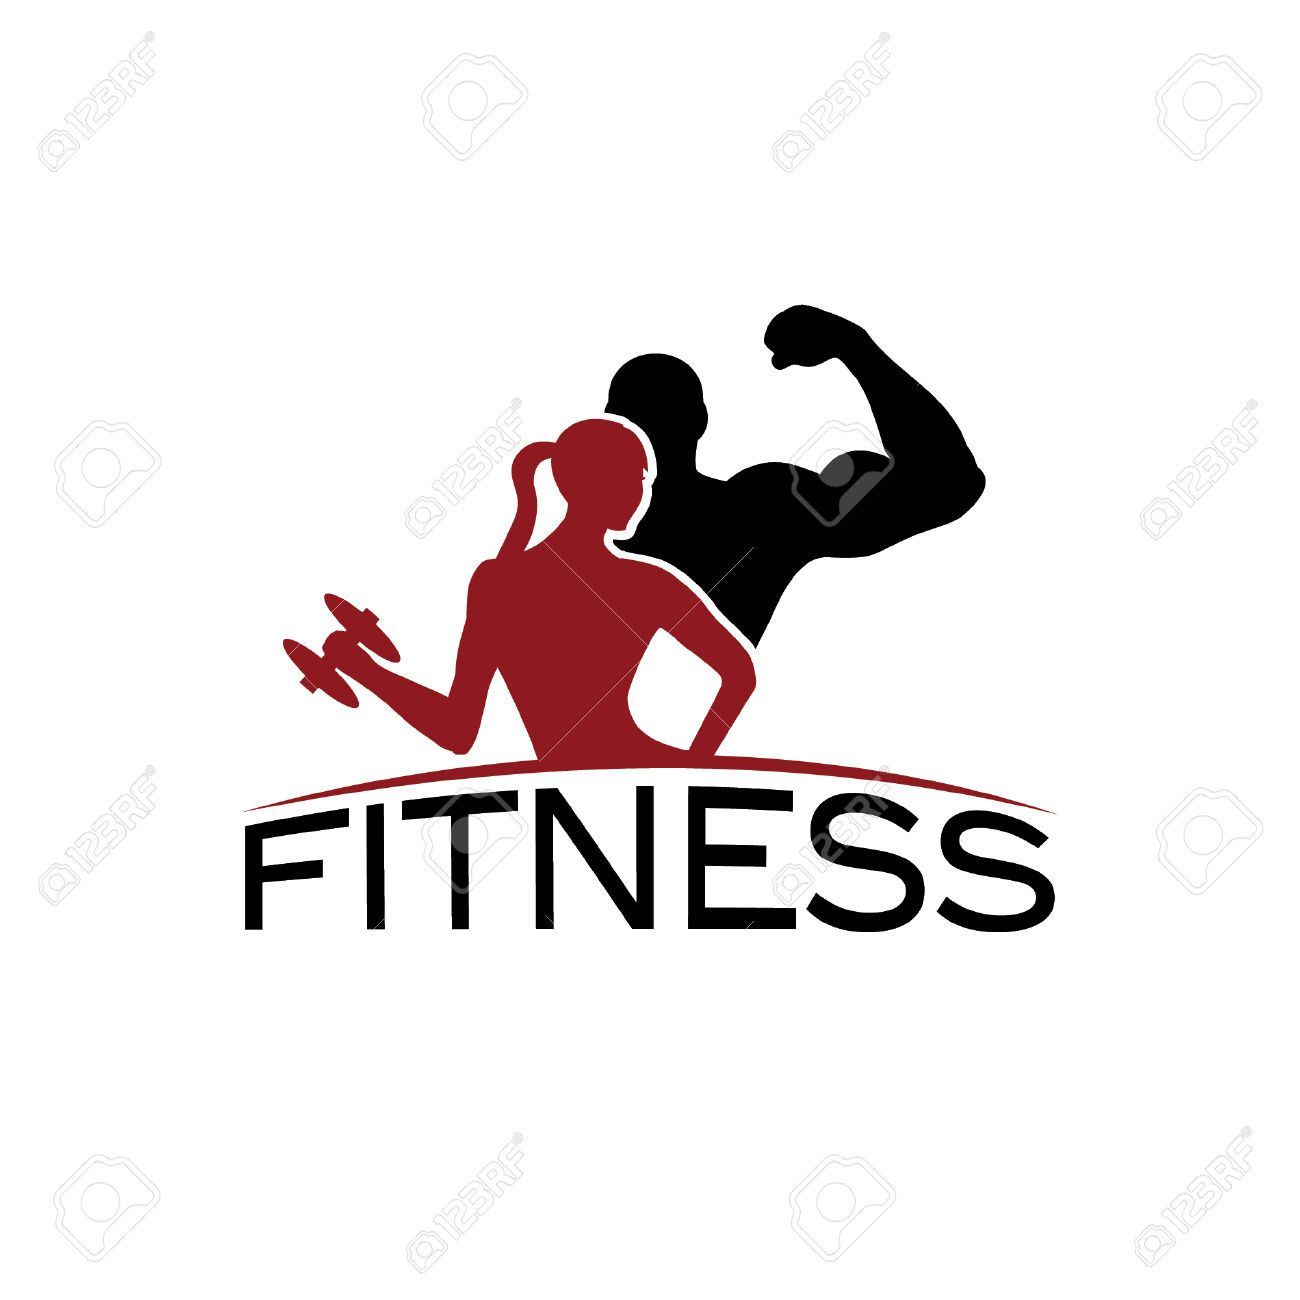 Man And Woman Of Fitness Silhouette Character Vector Design Template Fitness Logo Design Template Vector Design